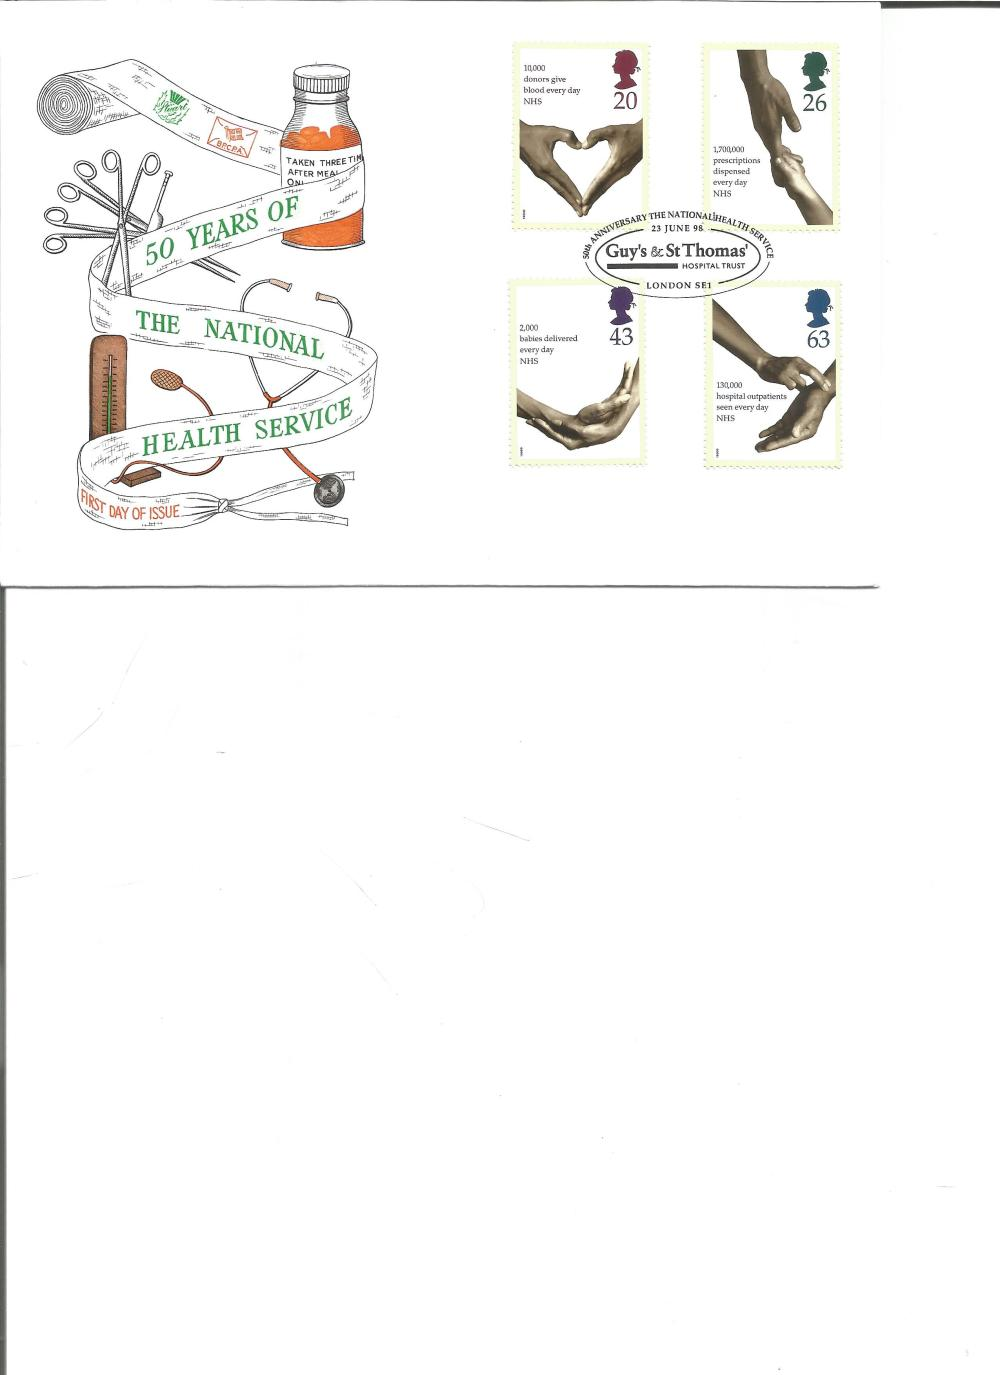 FDC 50 Years of the National Health Service c/w set of four commemorative stamps PM Guys & St Thomas